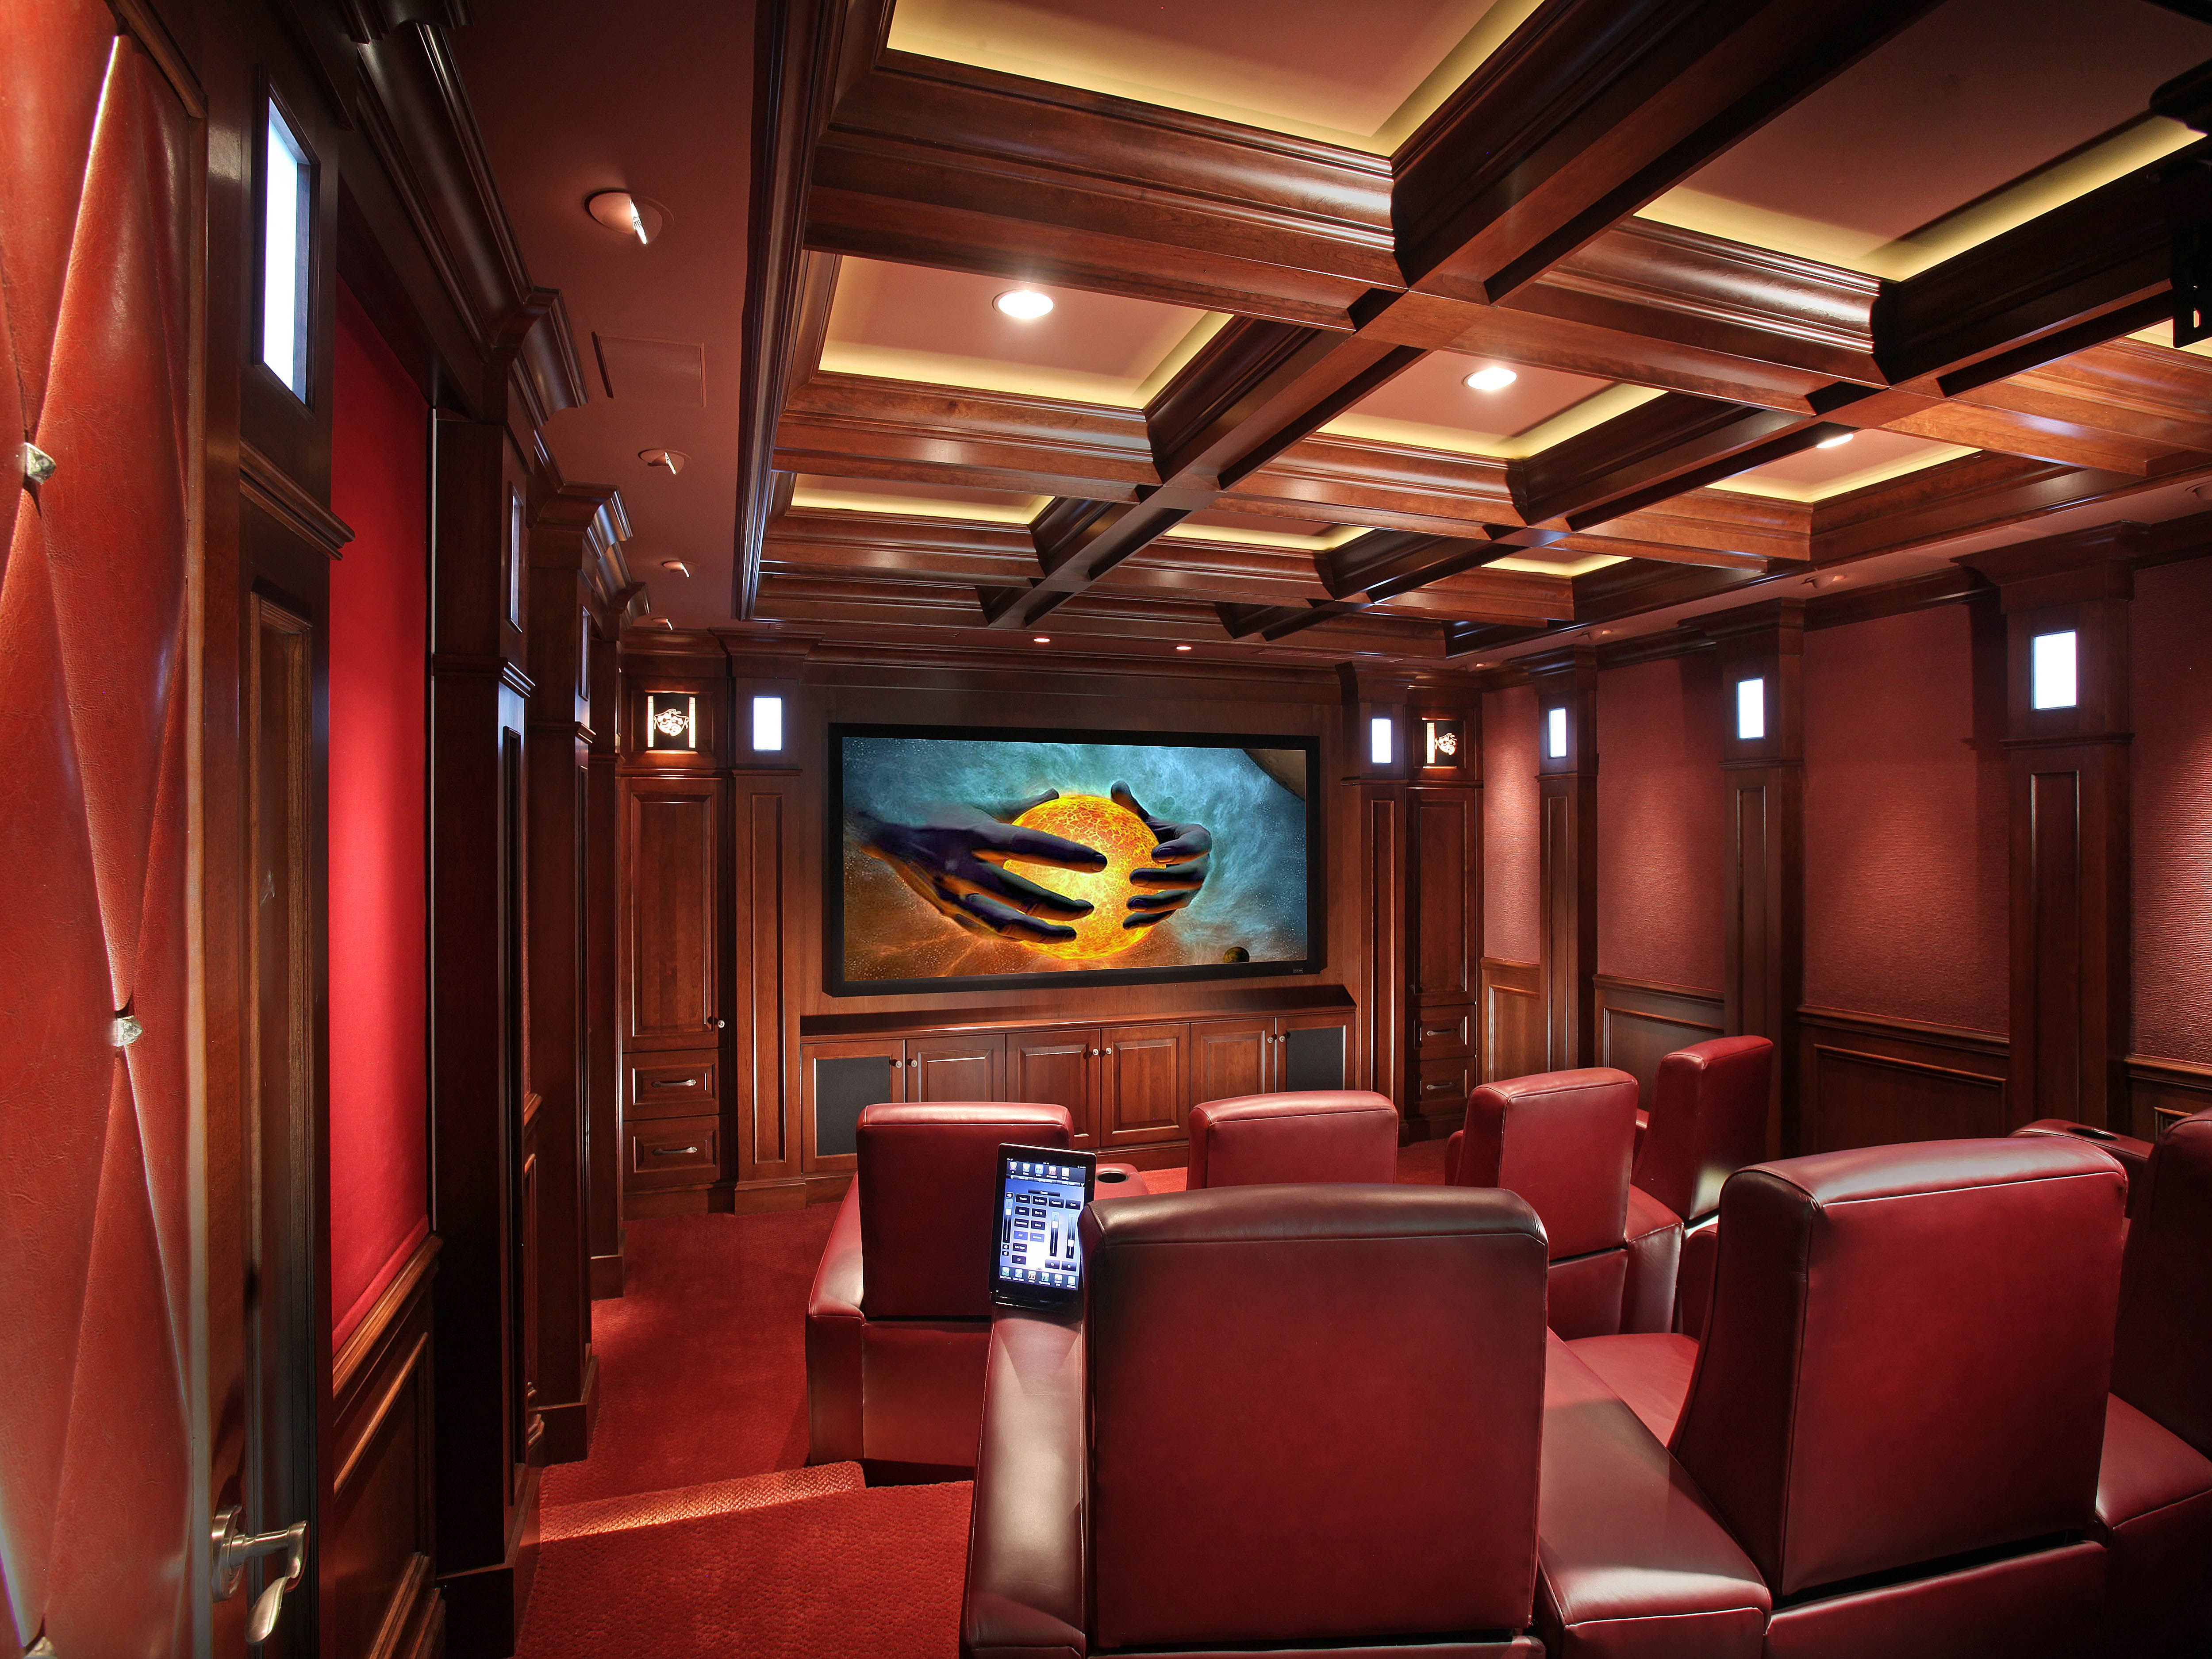 Home Theater Installation By Audio Concepts In Bostonnorth Attleboro, Ma